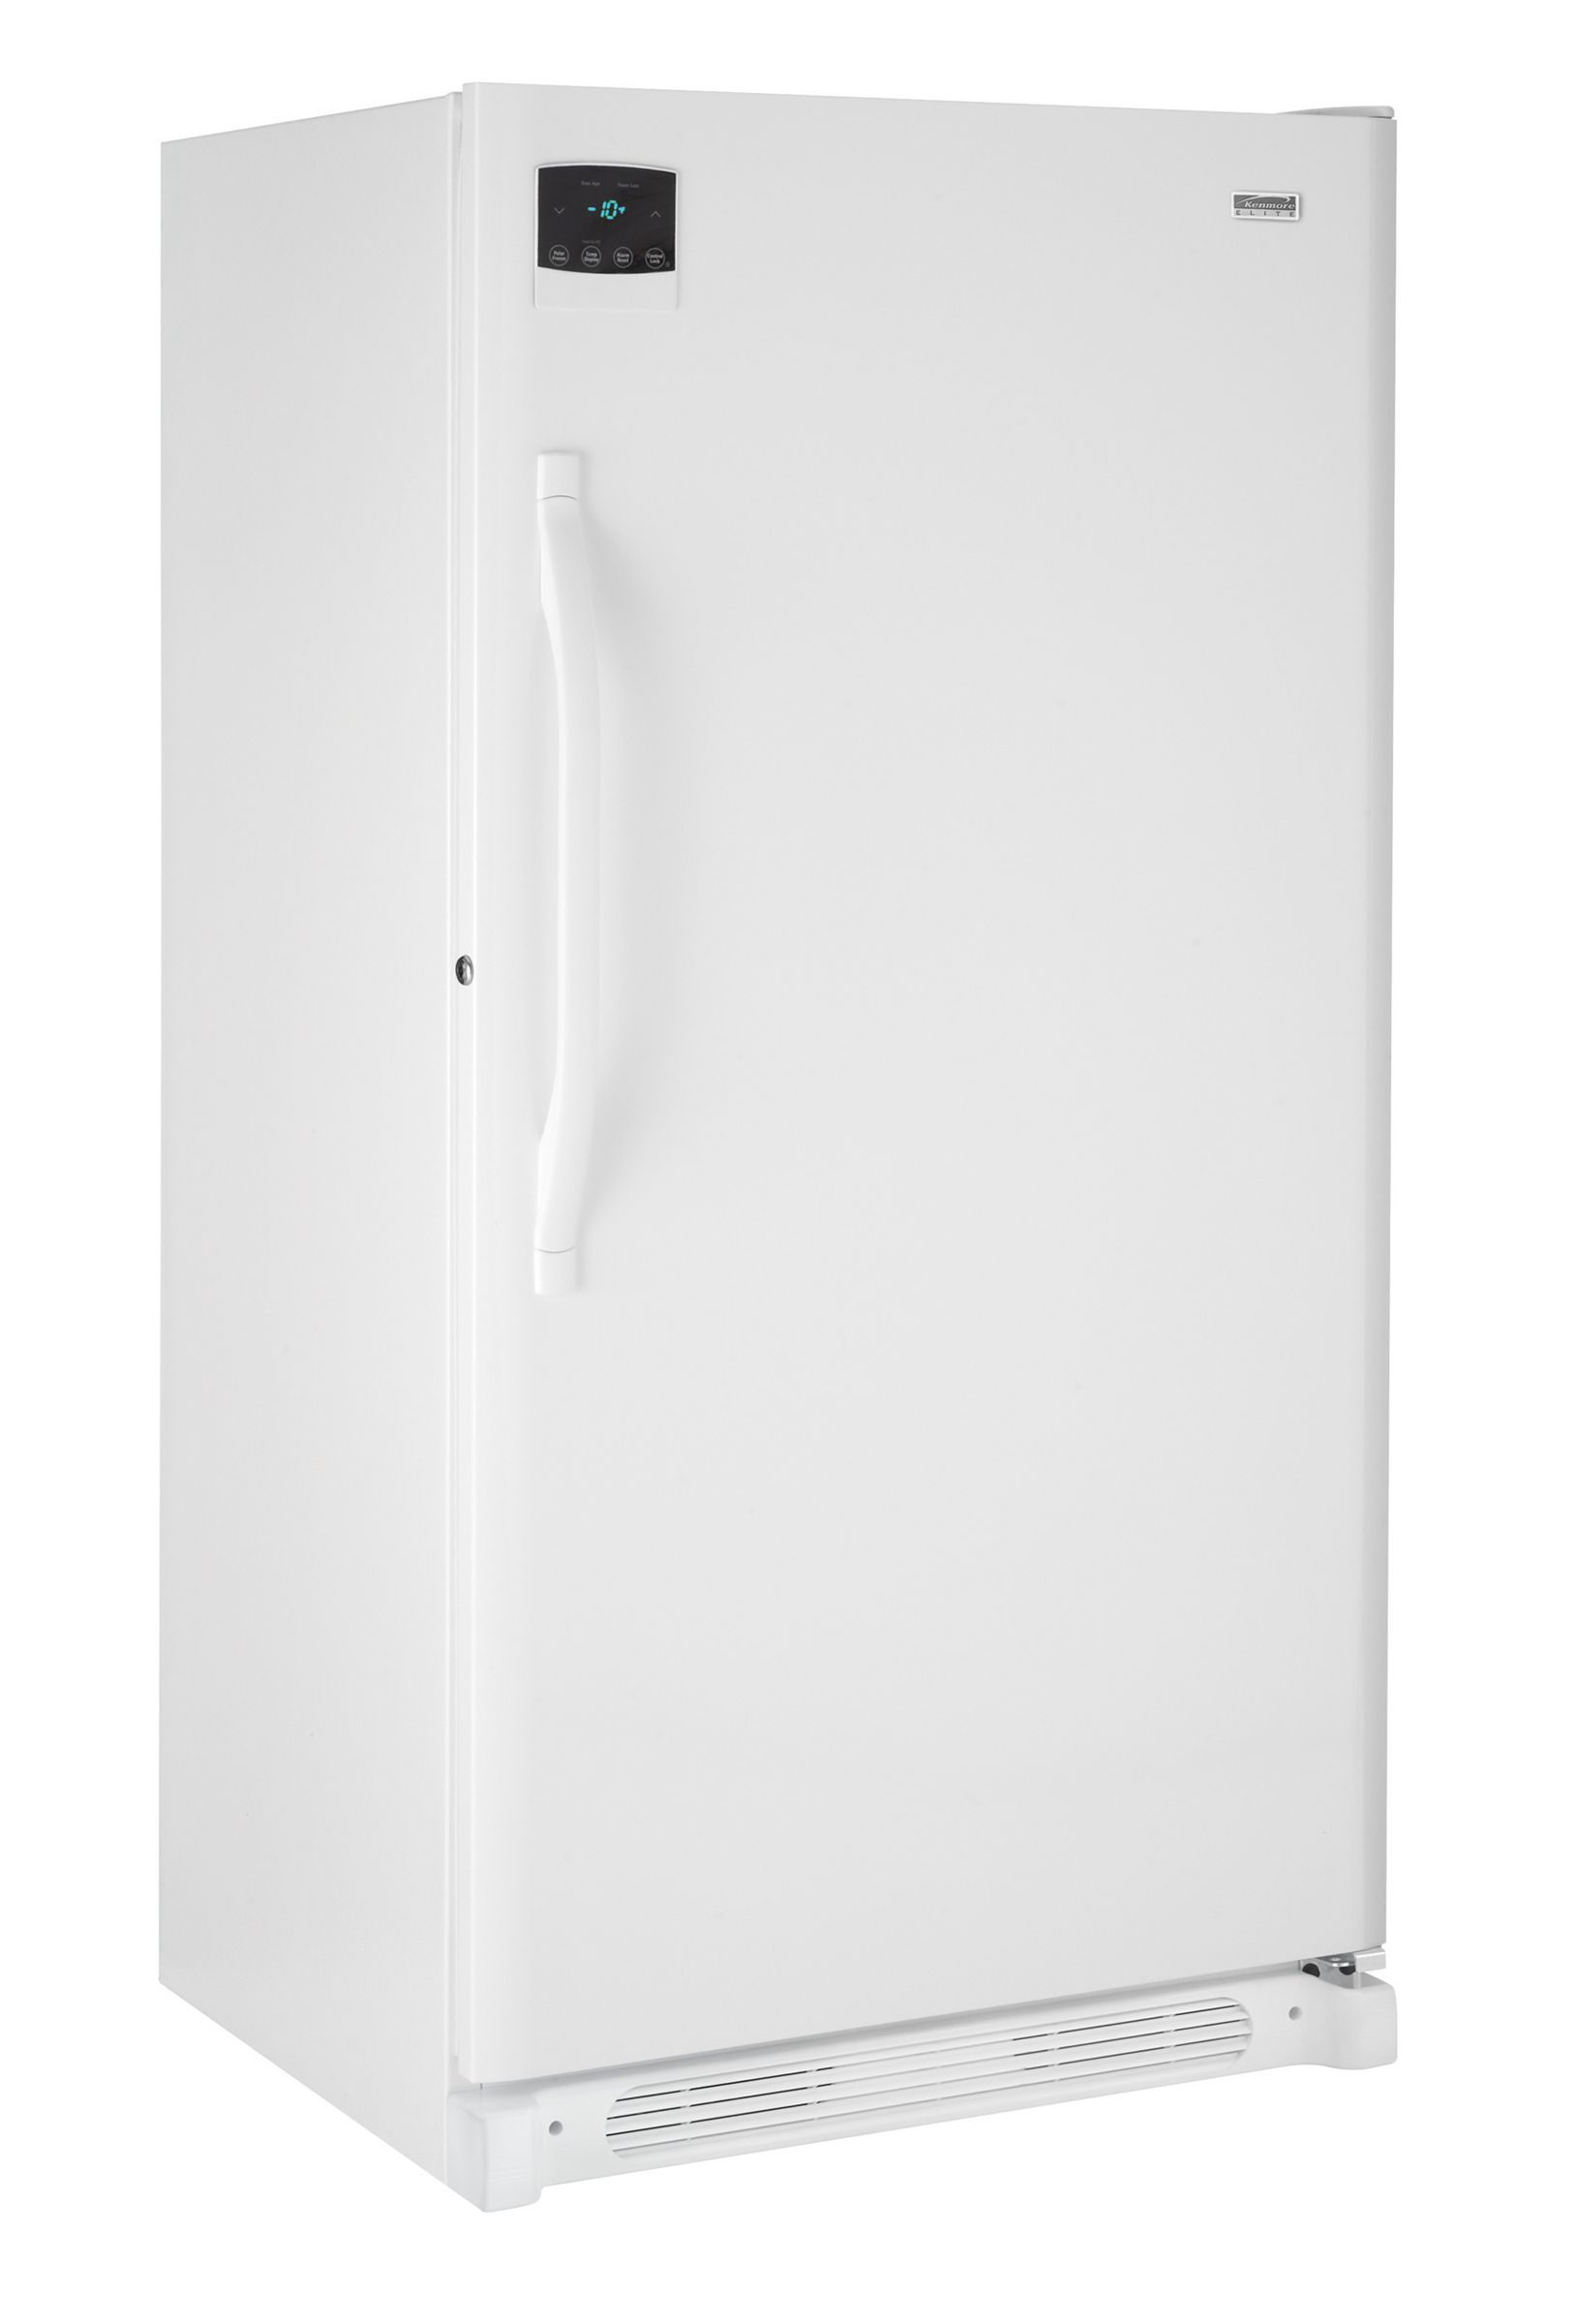 Kenmore Elite 16.7 cu. ft. Upright Freezer